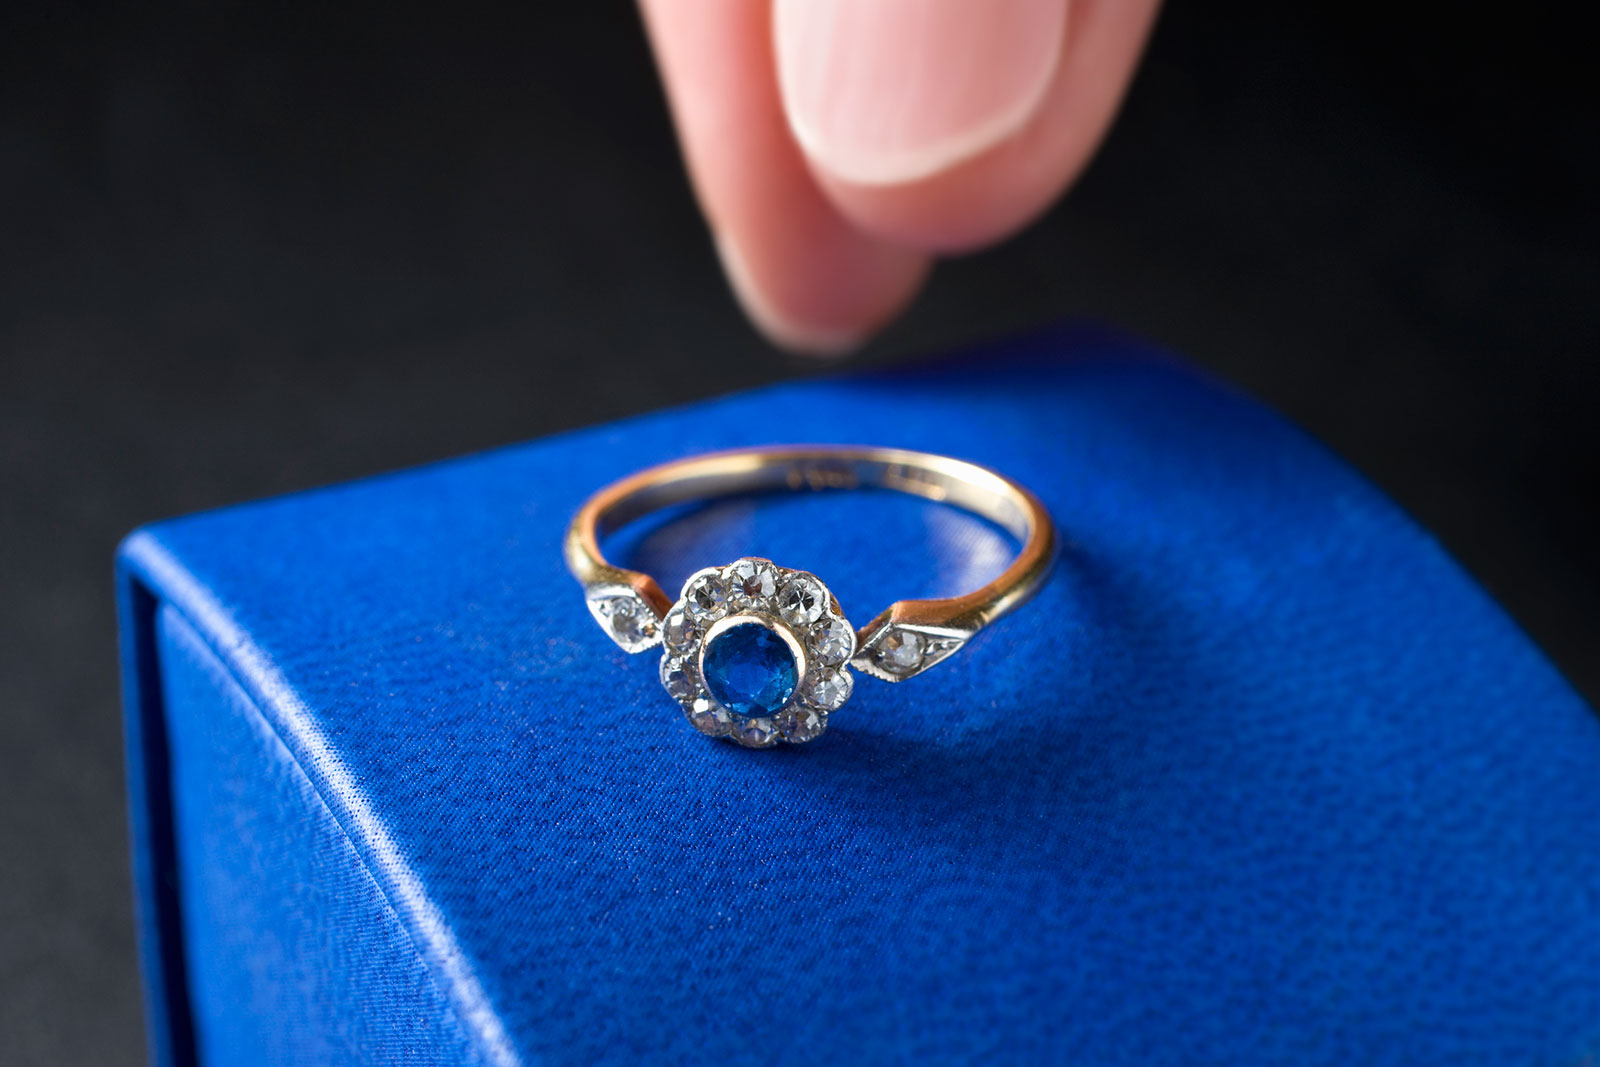 Sapphire Engagement Ring Meaning Lovetoknow